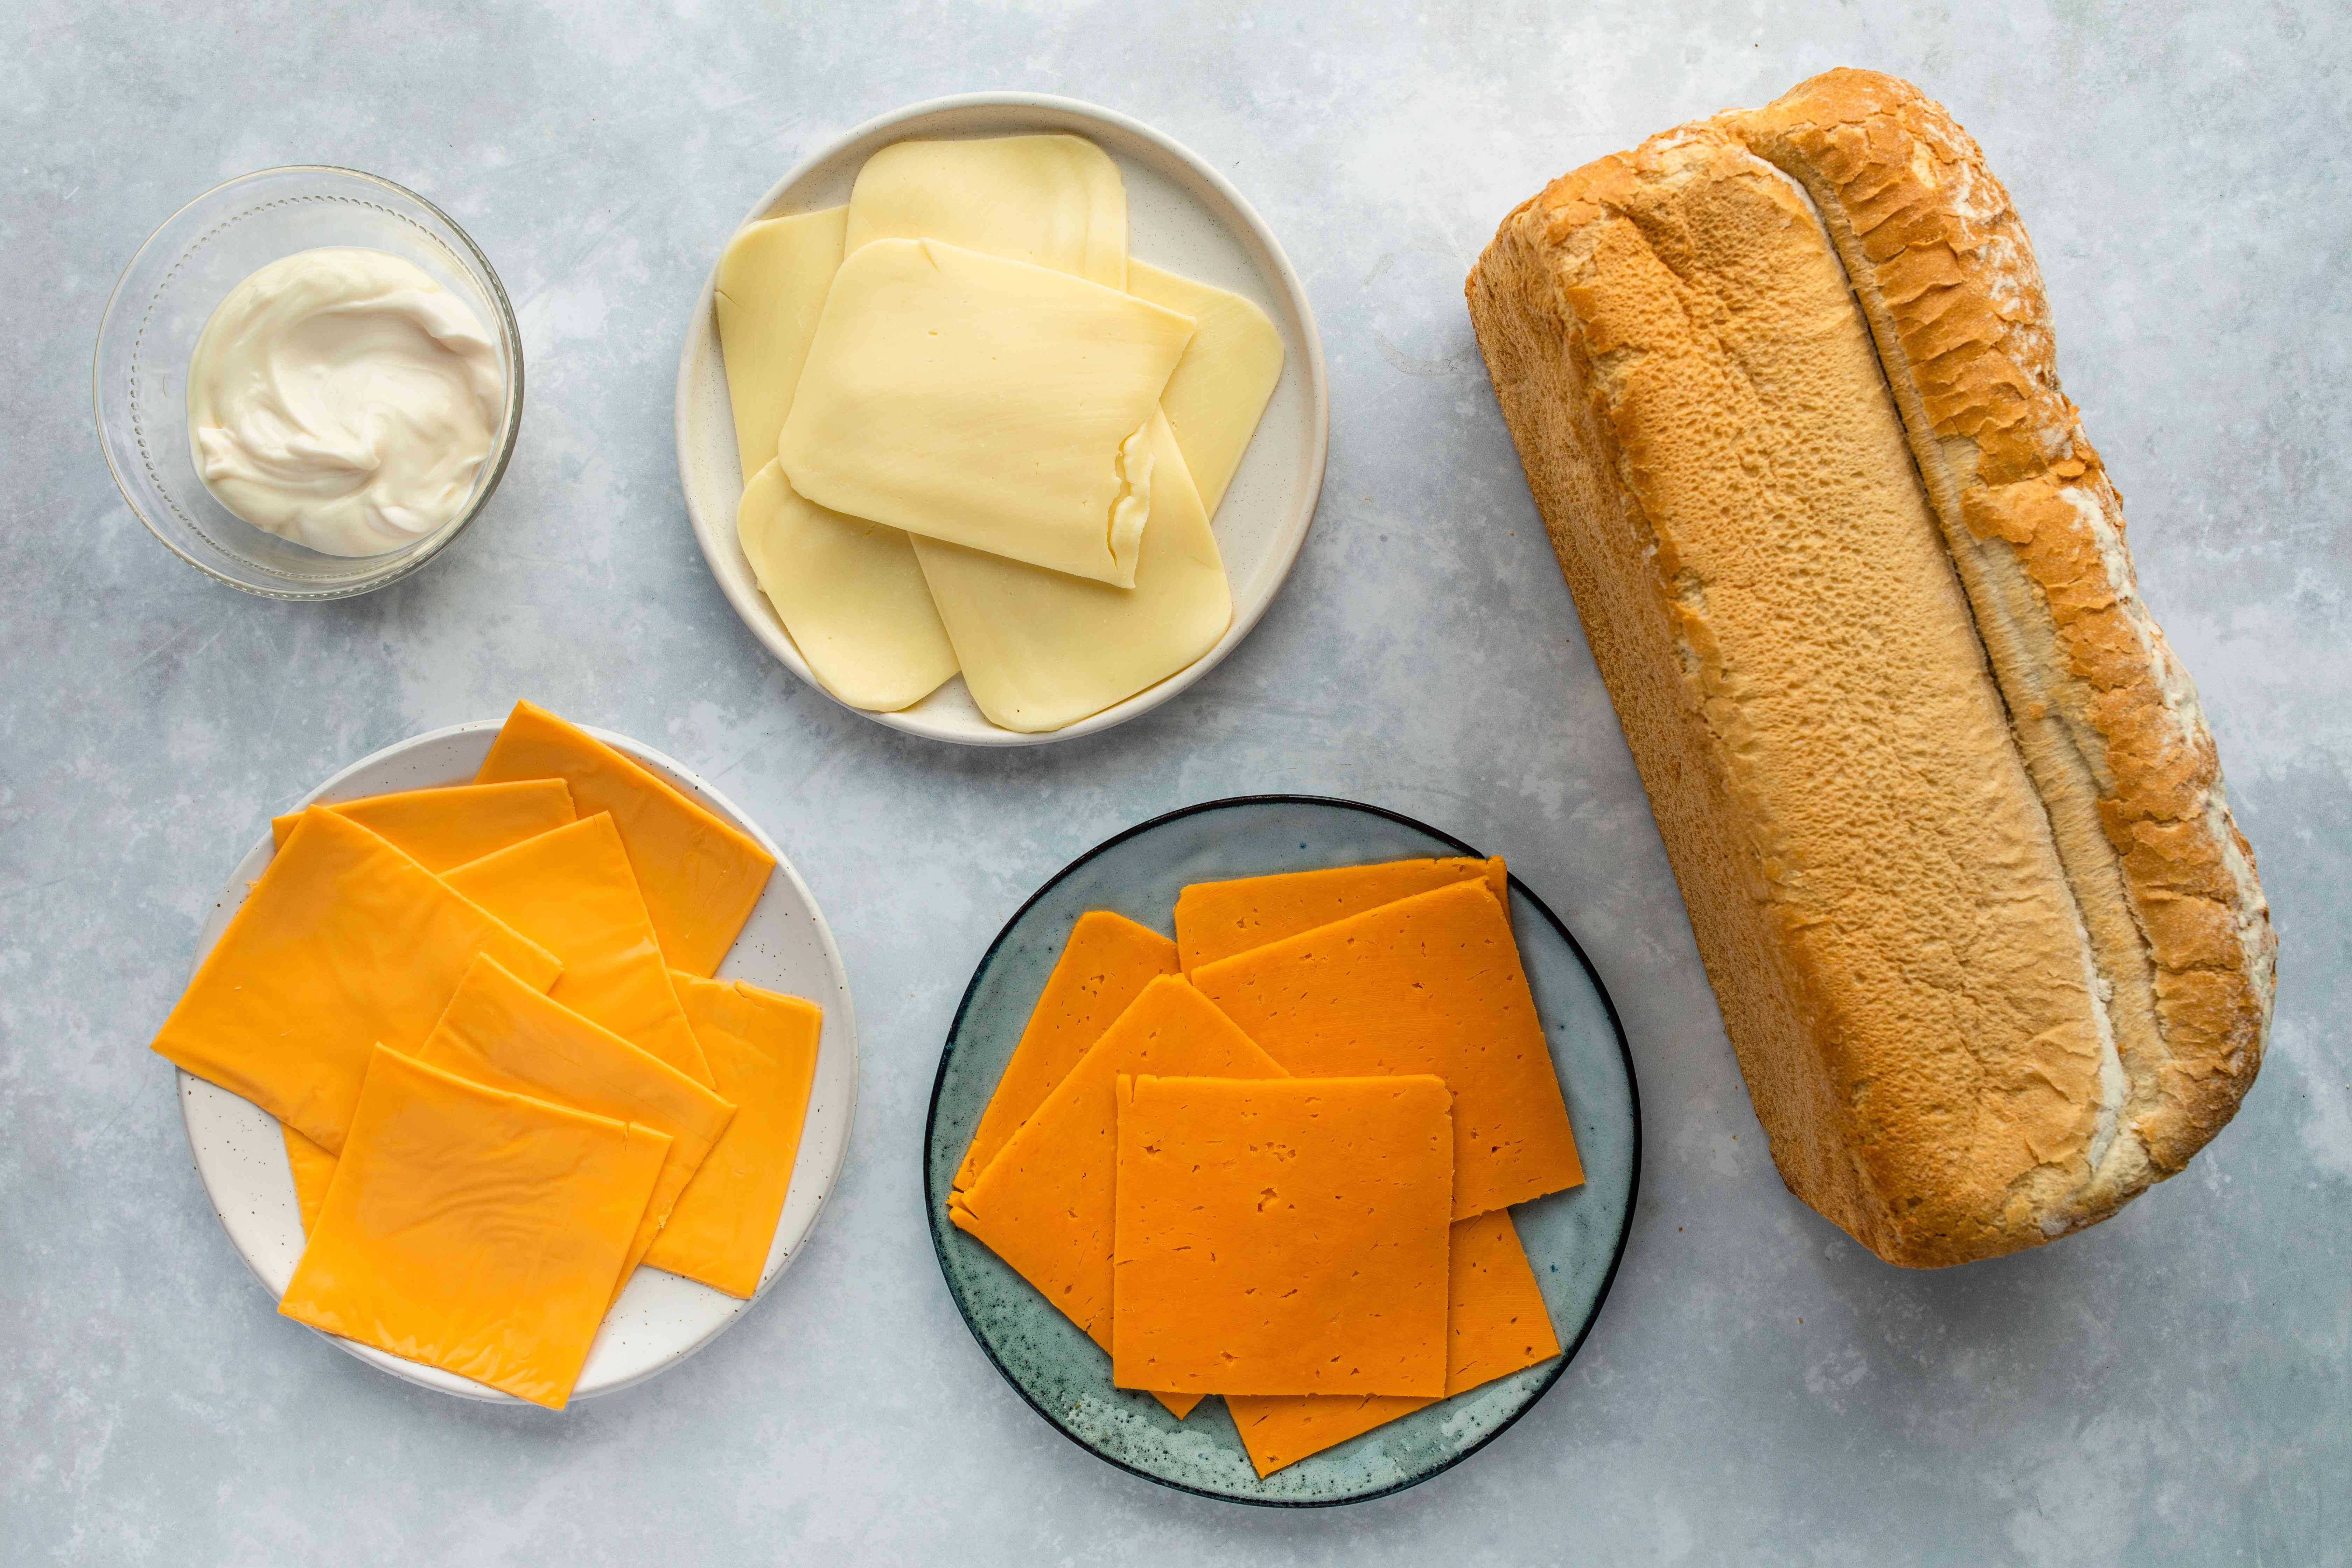 Ingredients for giant grilled cheese